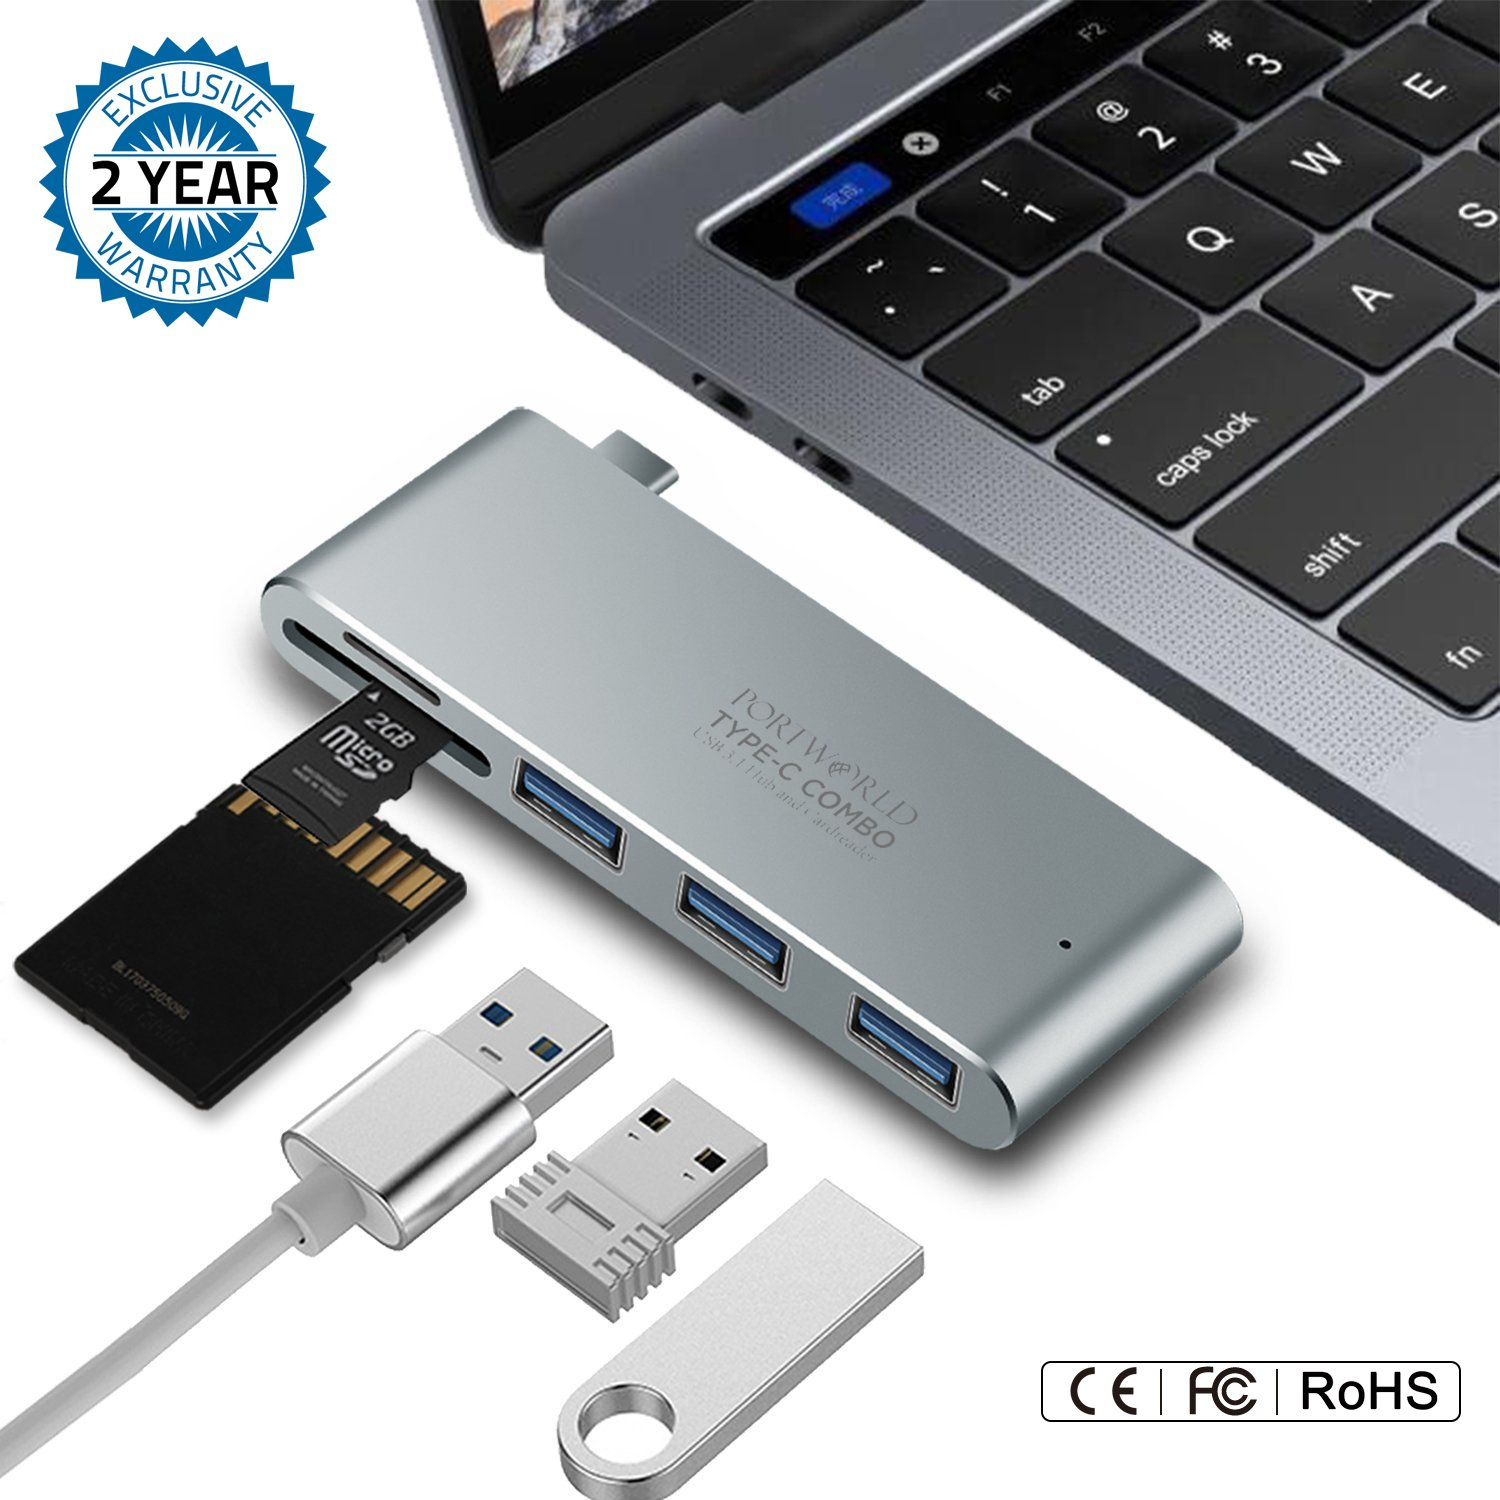 USB C HUB,Premium Type USB C Adapter with 3x 3.0 Ports & SD/MicroSD Card Reader – Ideal For Macbook, ChromeBook & Other Type C Devices–Sturdy Construction & Sleek Design – Super Fast Transfer Speed